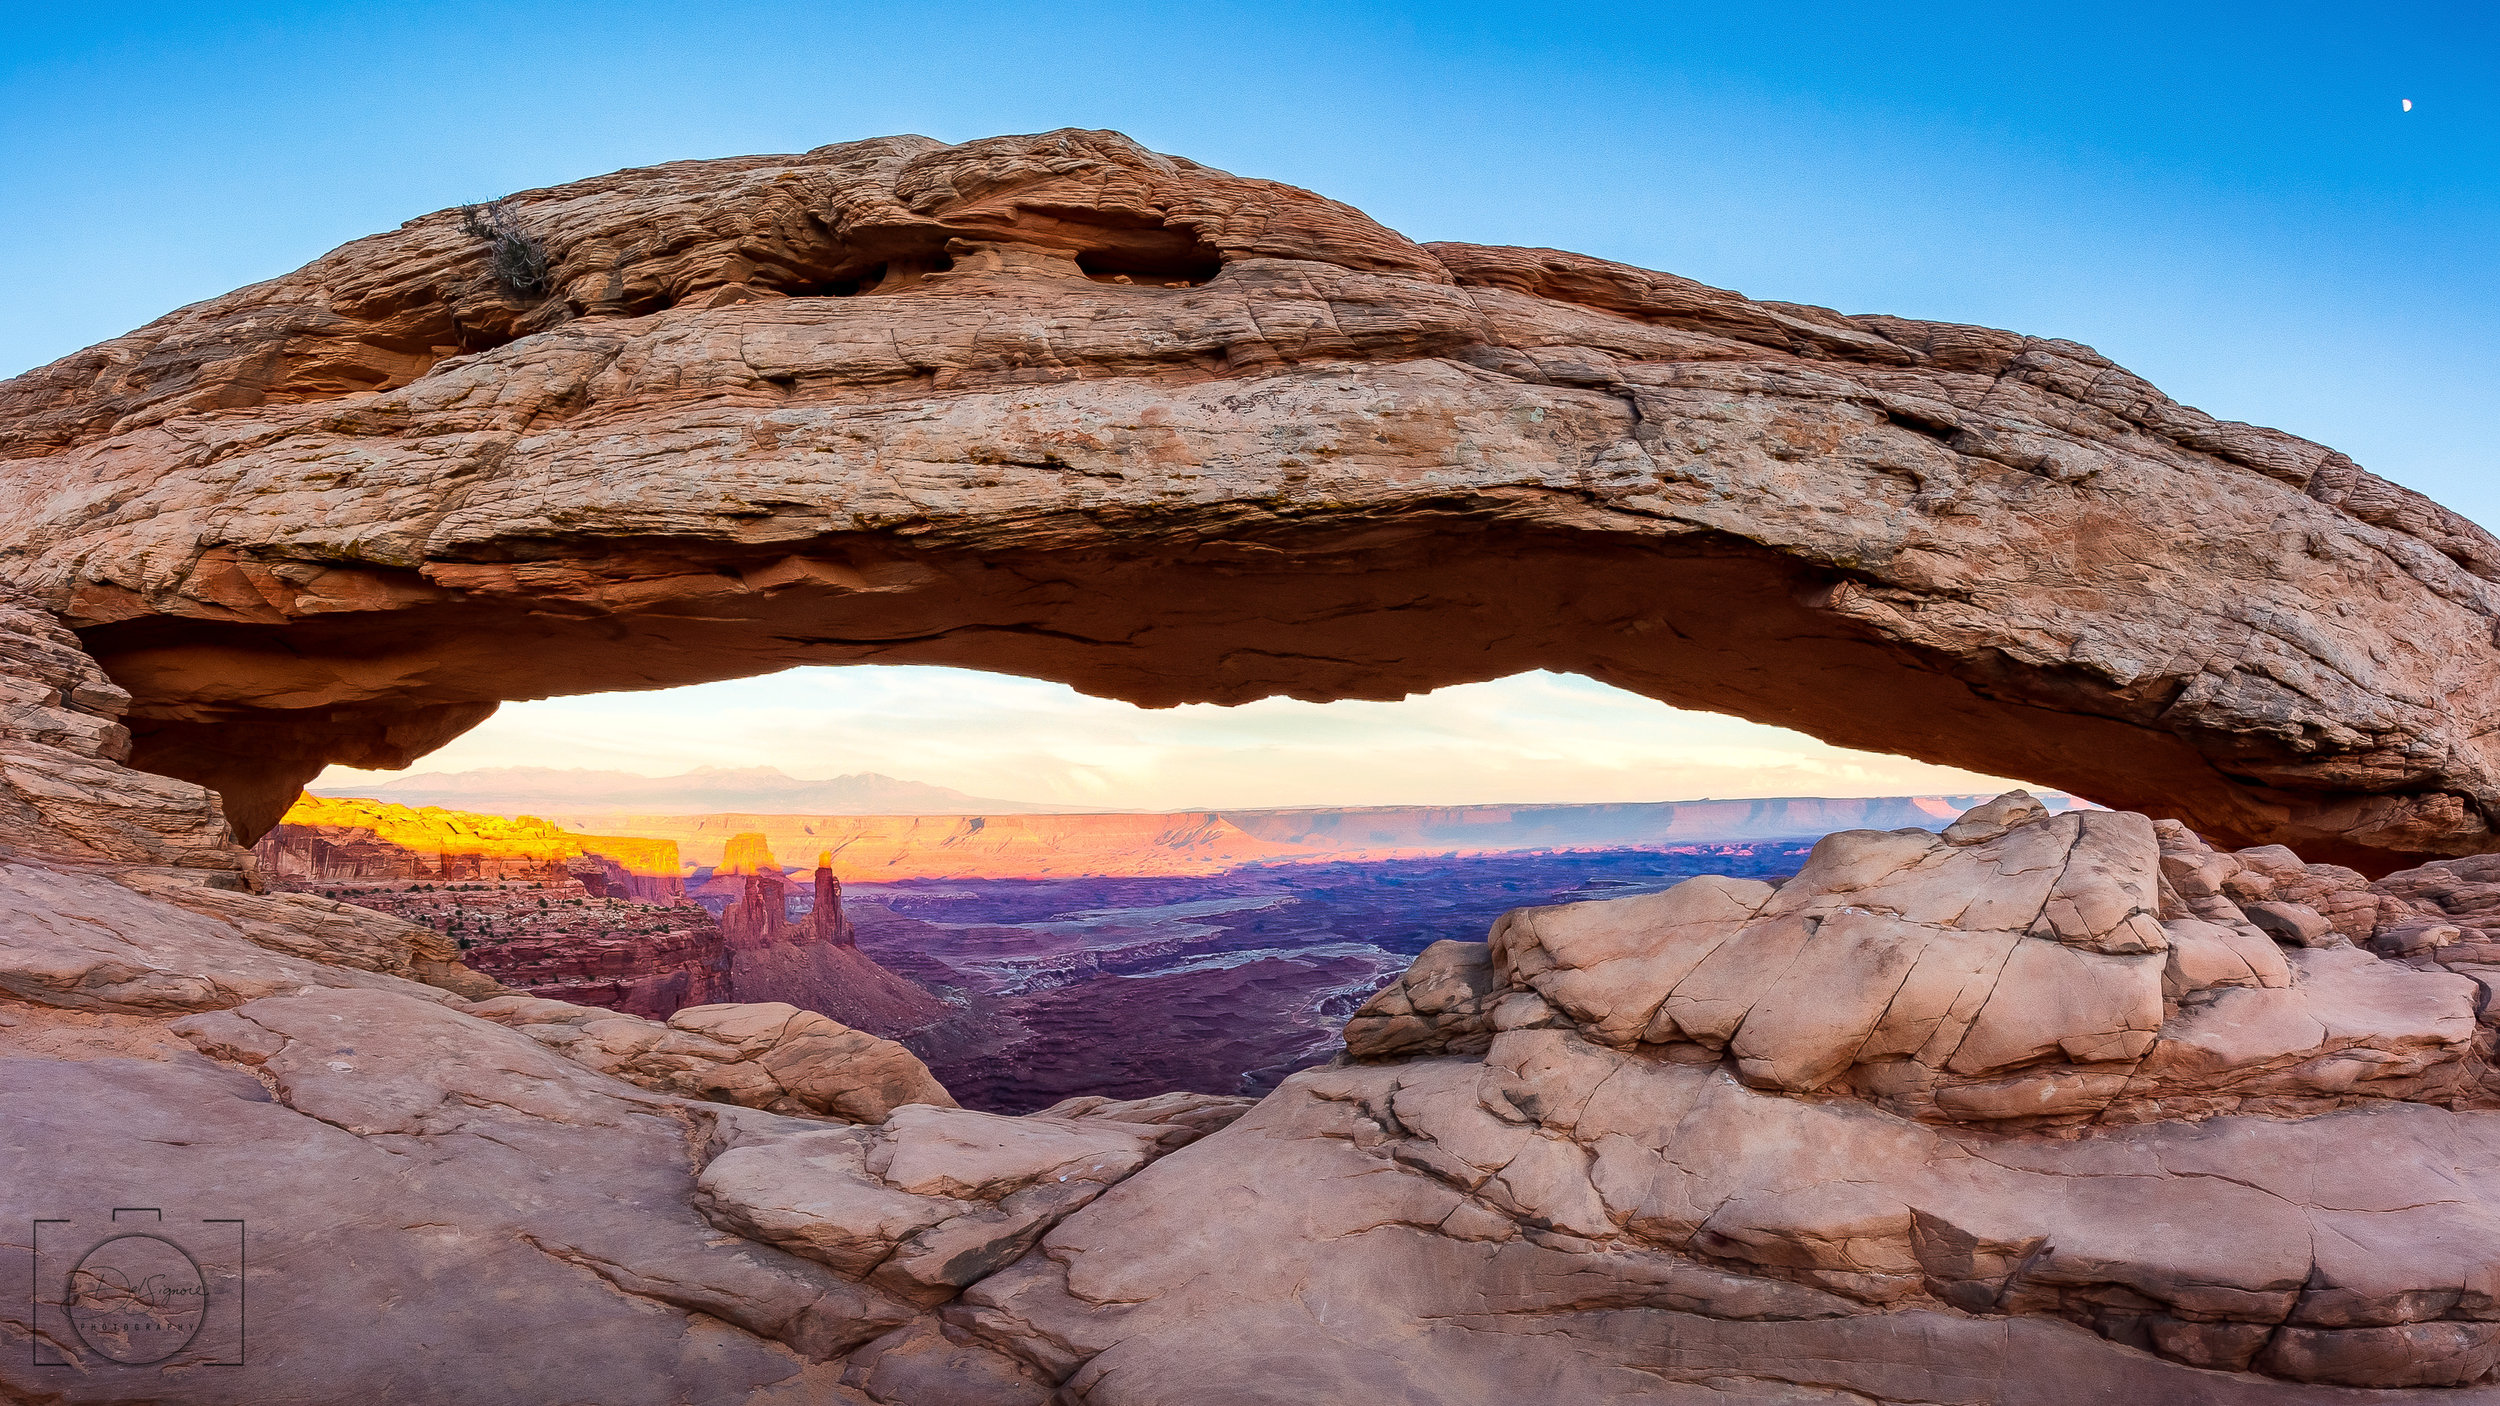 Moonrise at the Mesa Arch - Canyonlands National Park